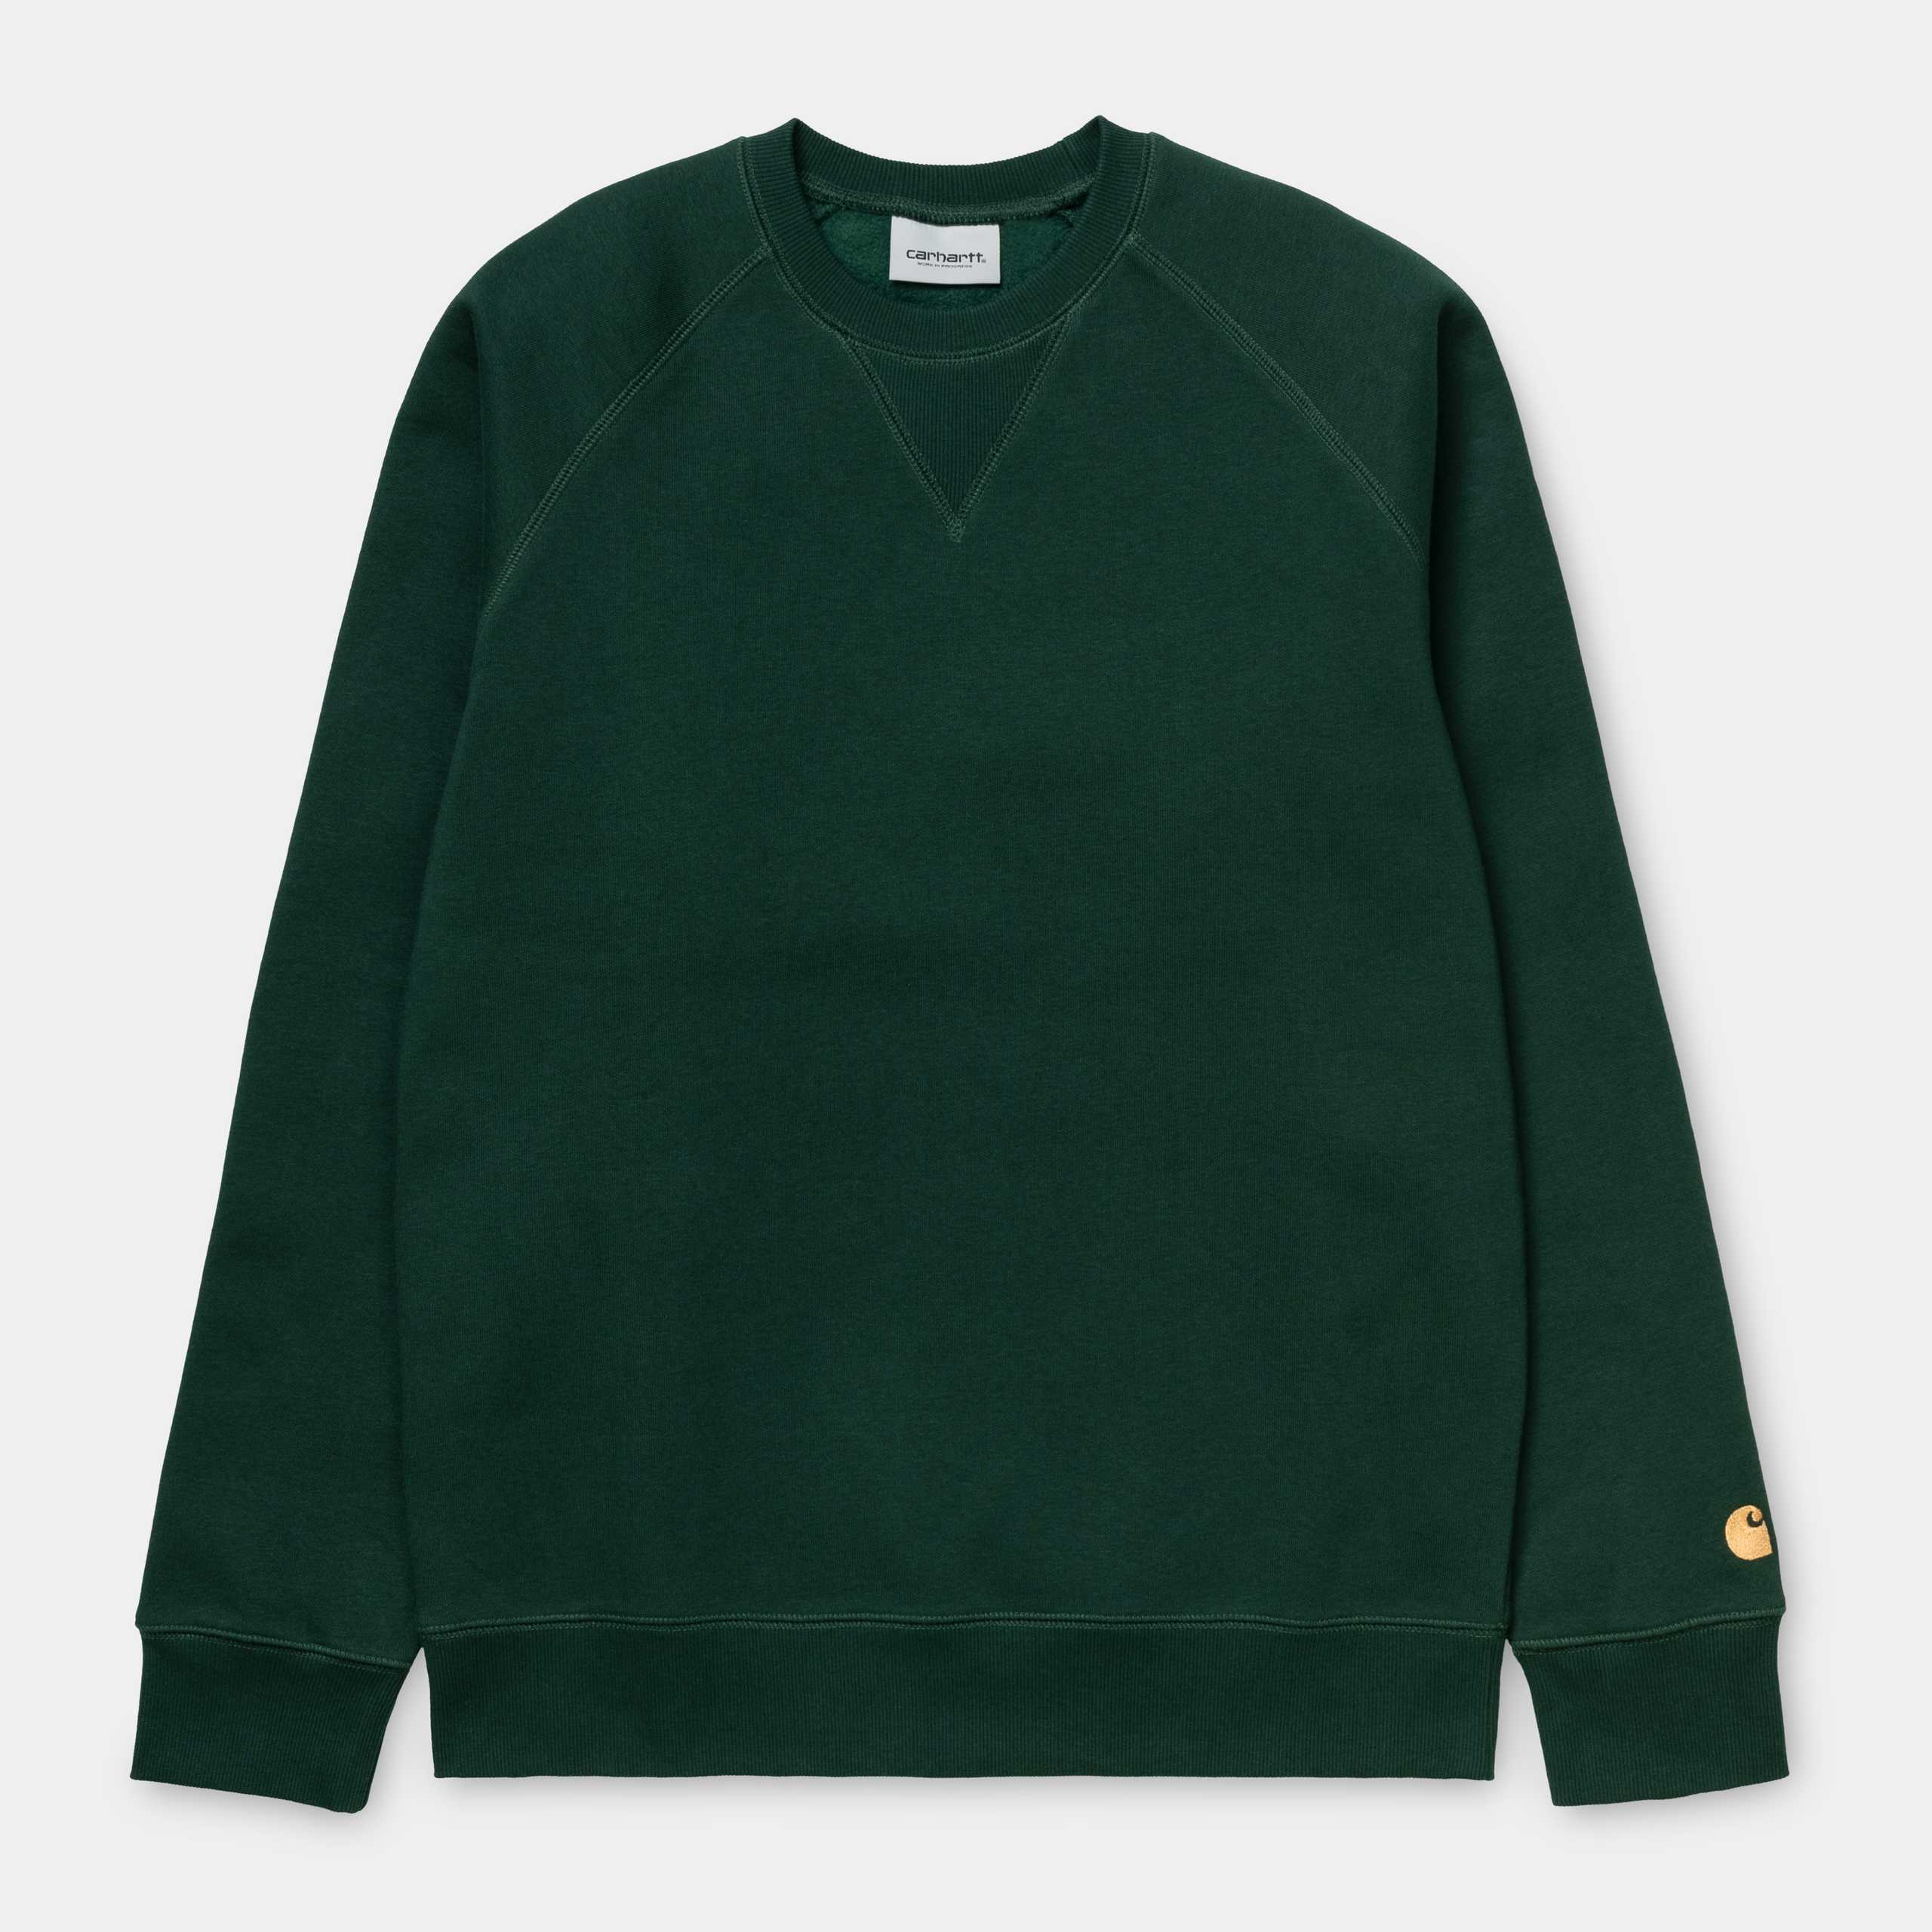 chase-sweat-bottle-green-gold-784 (3)